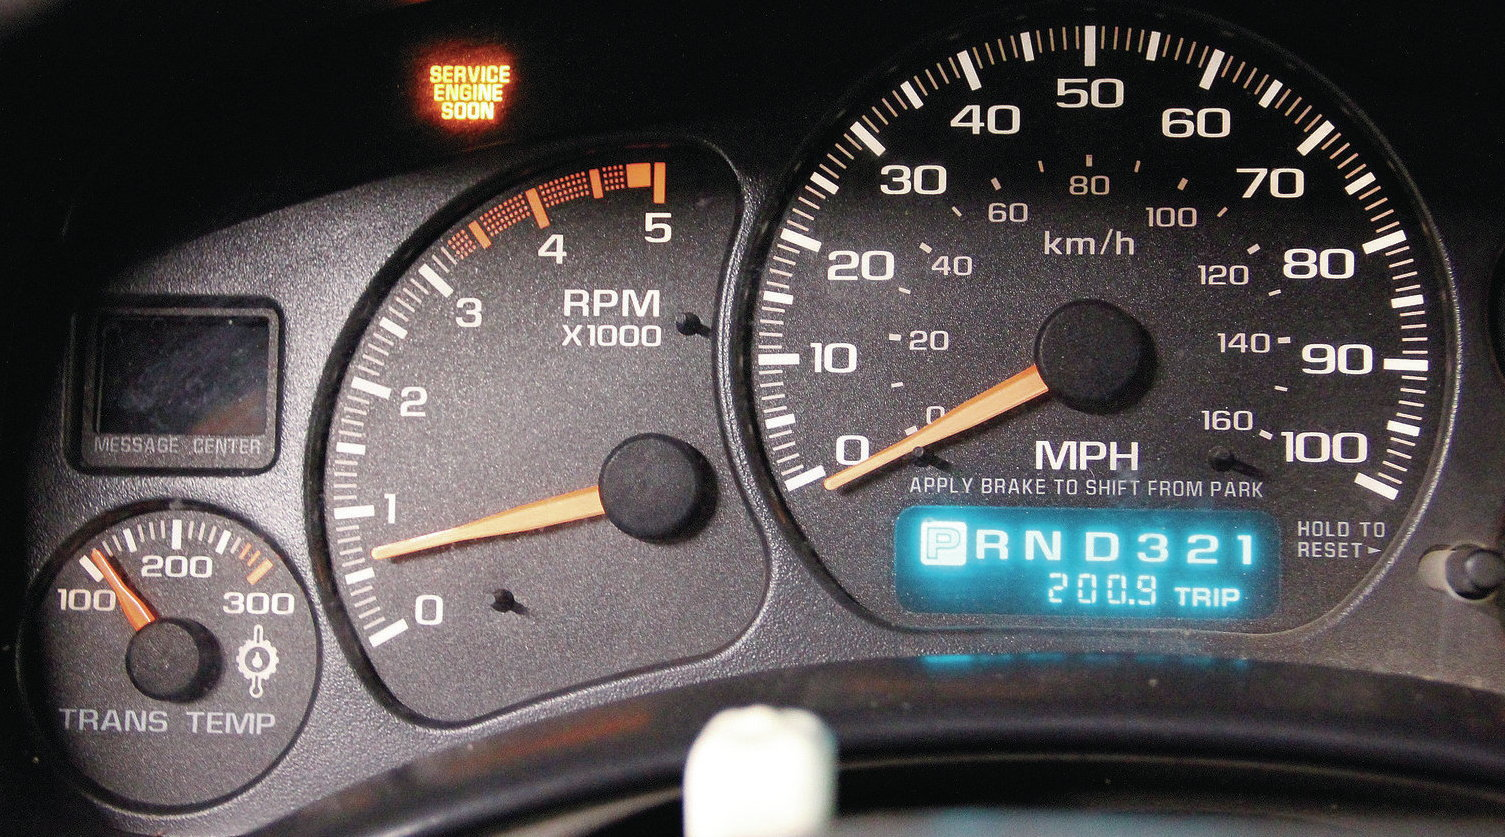 The check engine light will illuminate on your dash when service is needed.